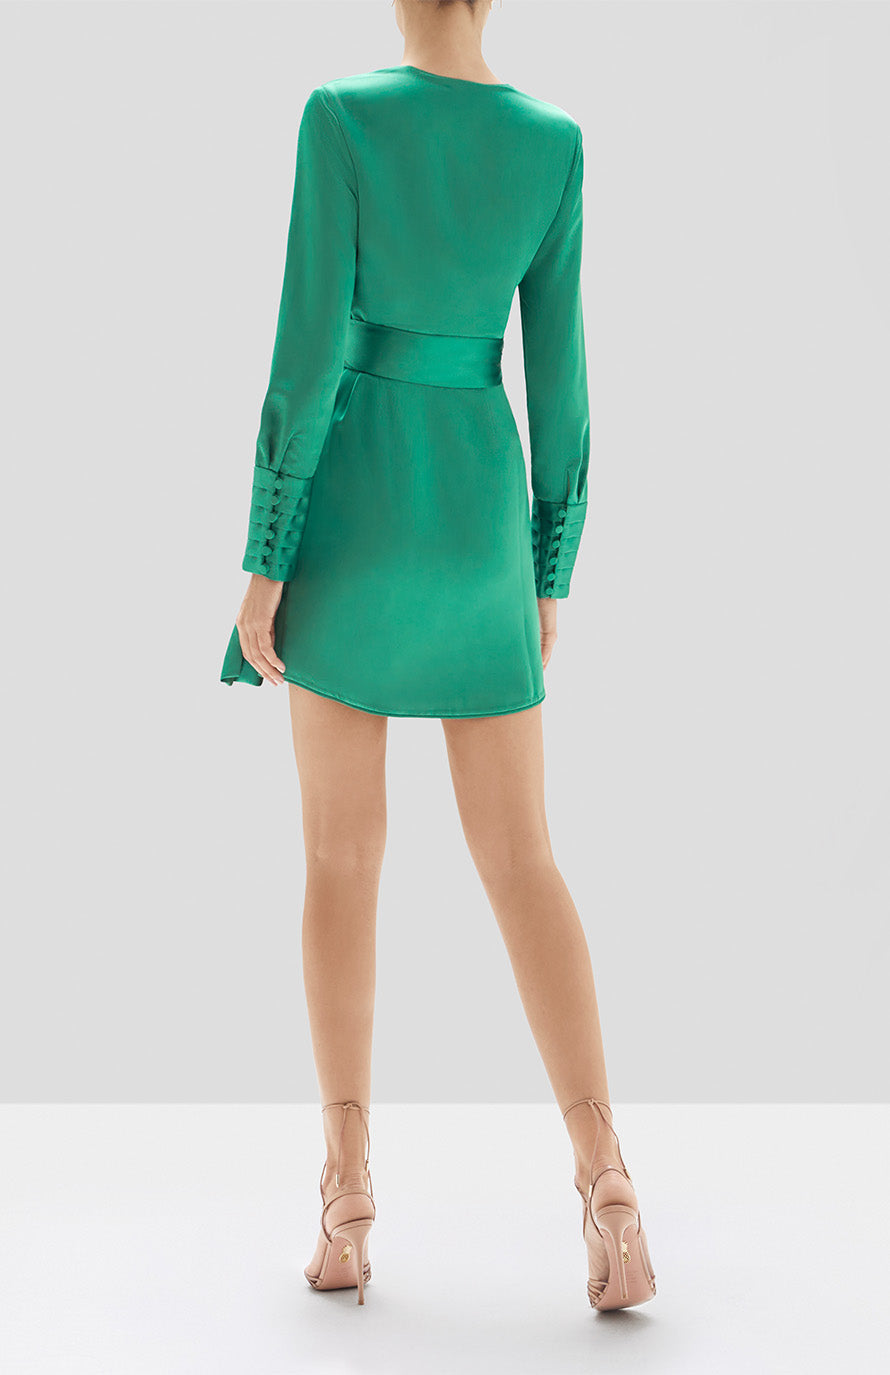 Alexis Rodya Dress in Emerald Green from the Holiday 2019 Ready To Wear Collection - Rear View